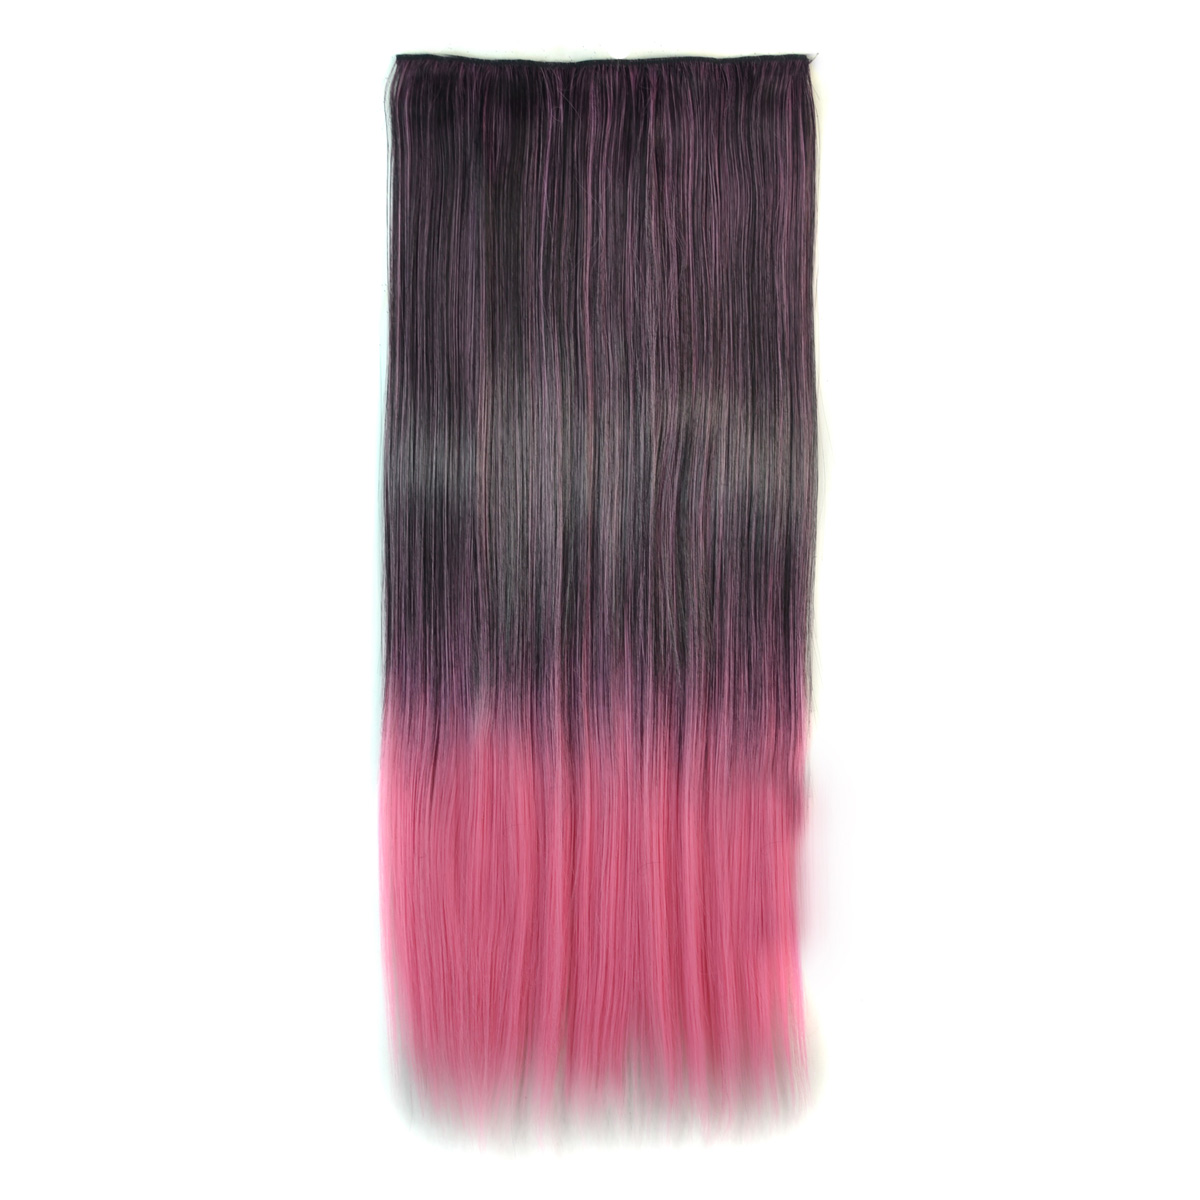 Black Pink Ombre 60cm Long Straight Clip In Hair Extensions 236